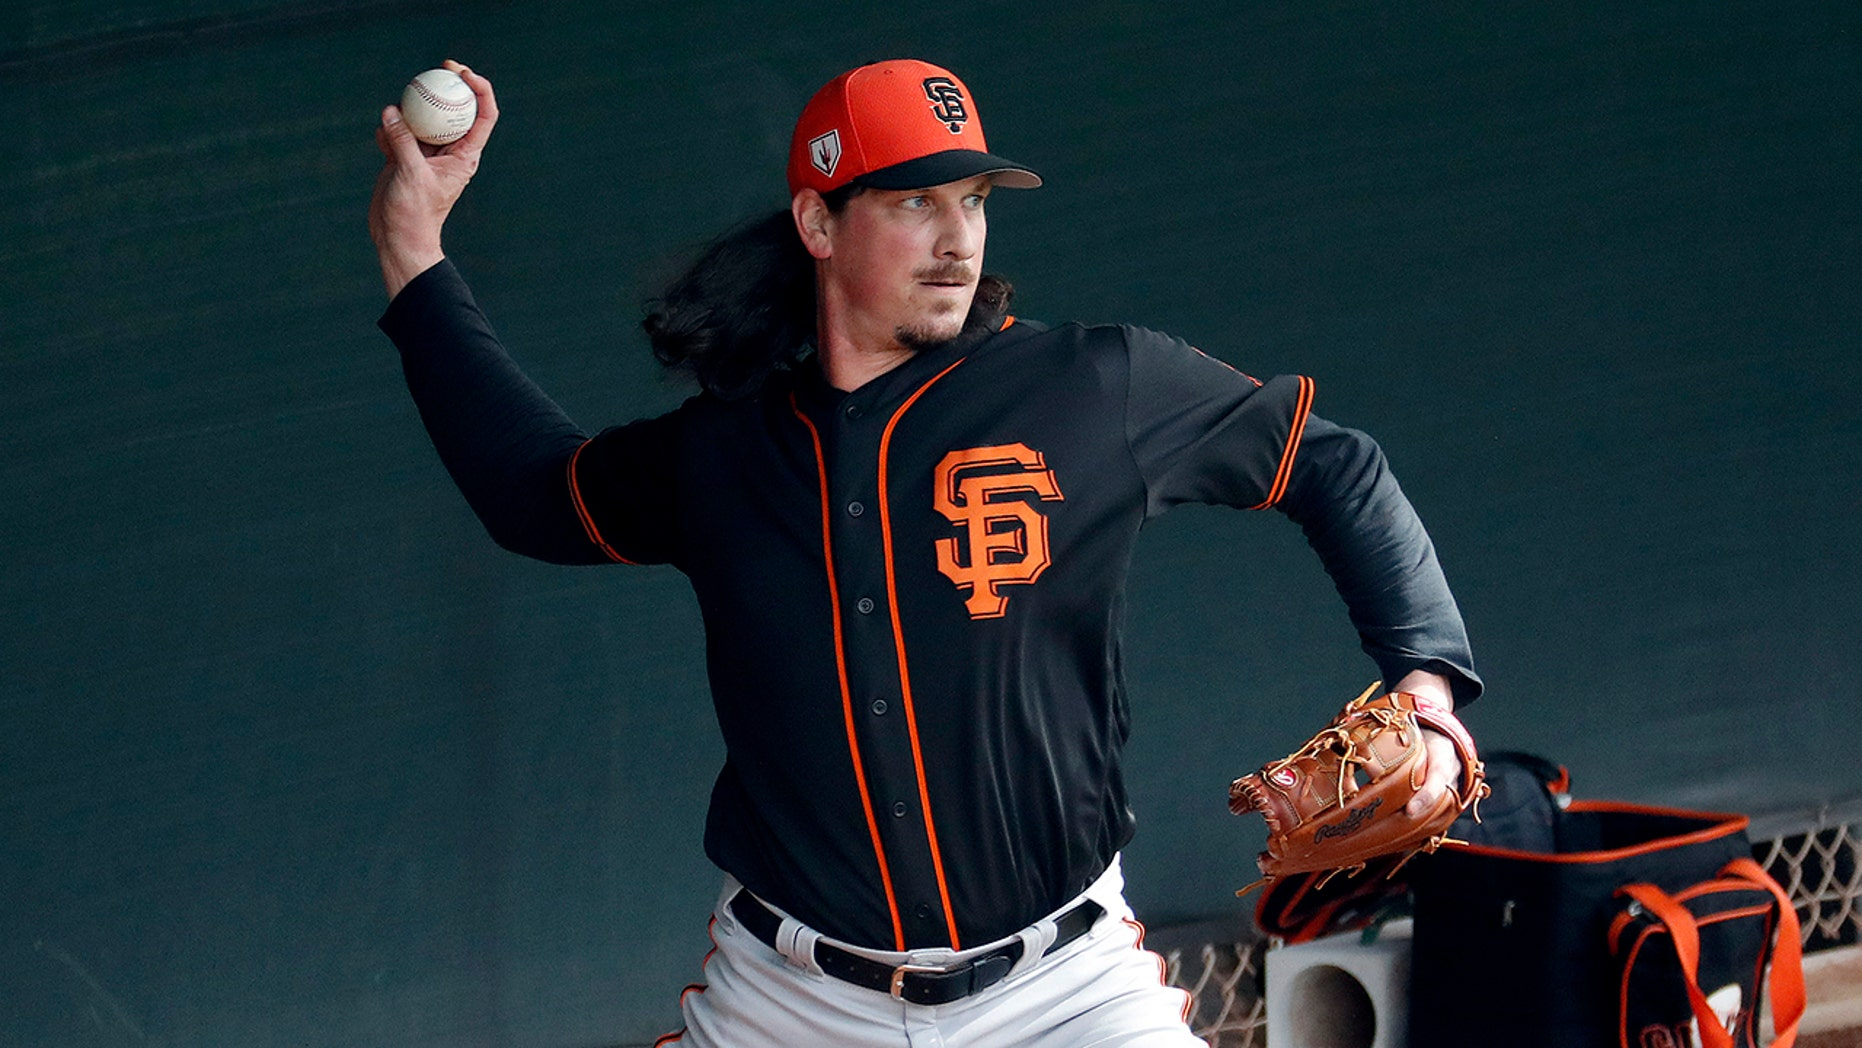 San Francisco Giants pitcher Jeff Samardzija works out during a baseball spring training practice, Wednesday, Feb. 13, 2019, in Scottsdale, Ariz.